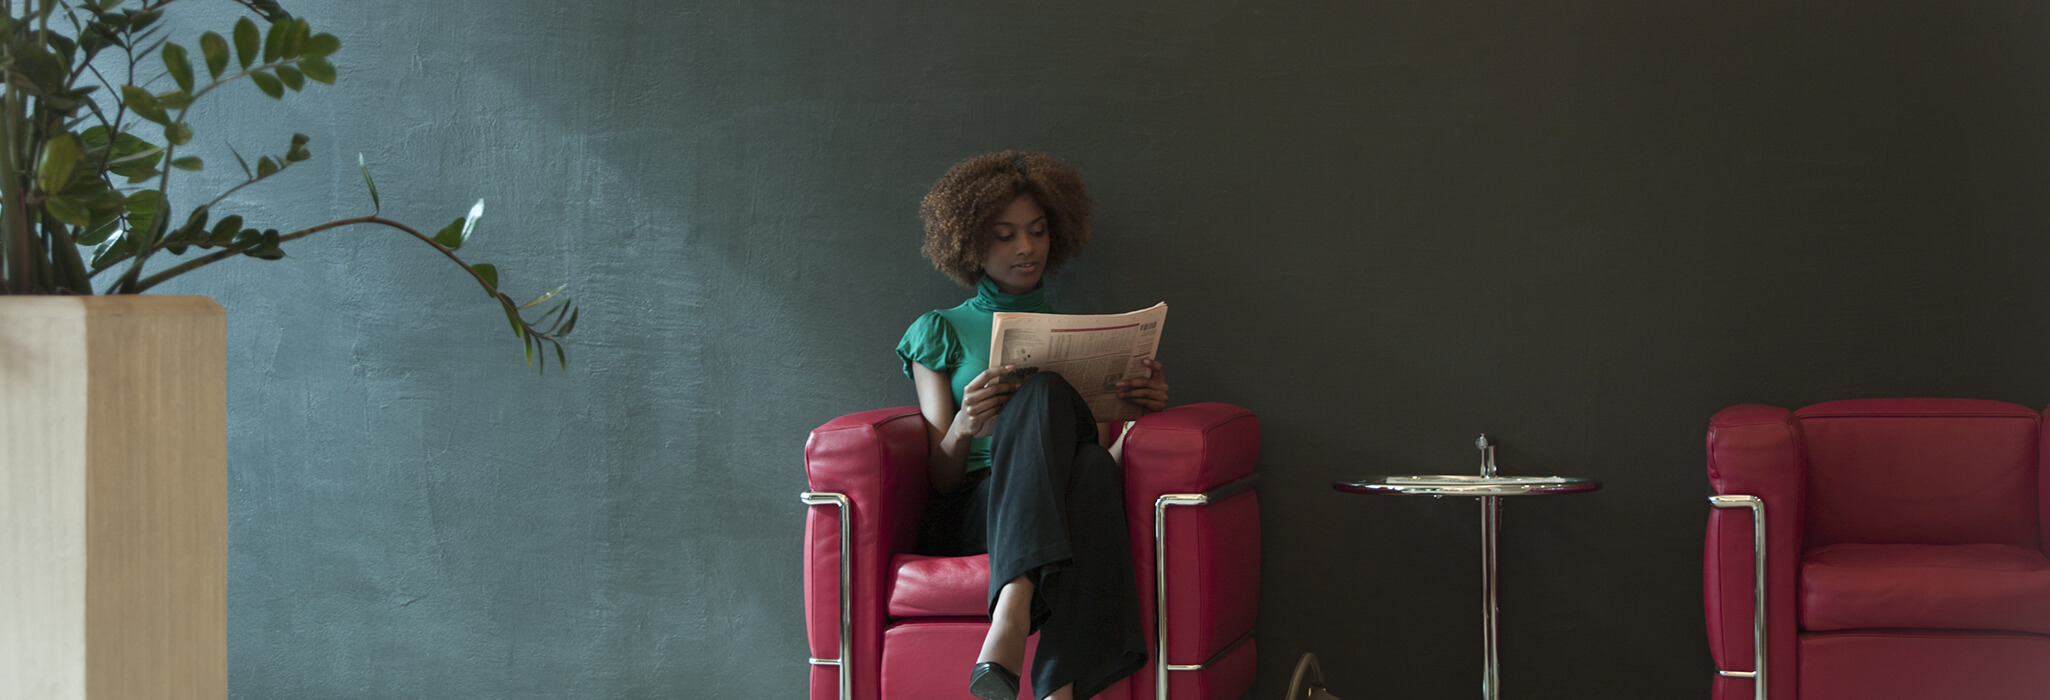 Image of woman reading a paper